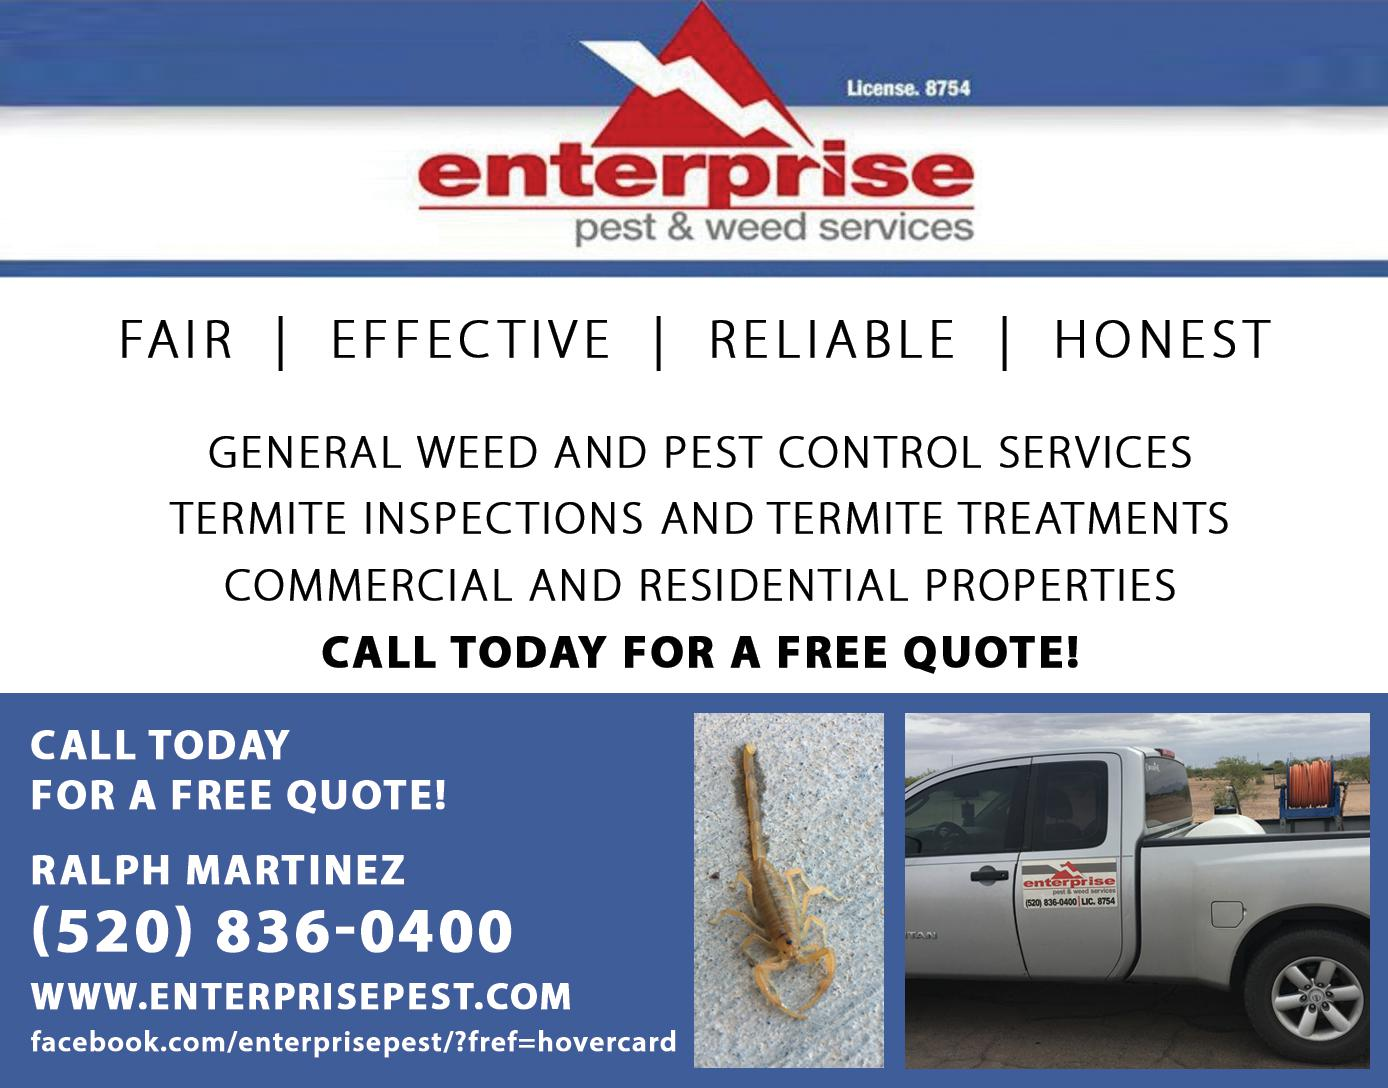 Enterprise Pest and Weed Services